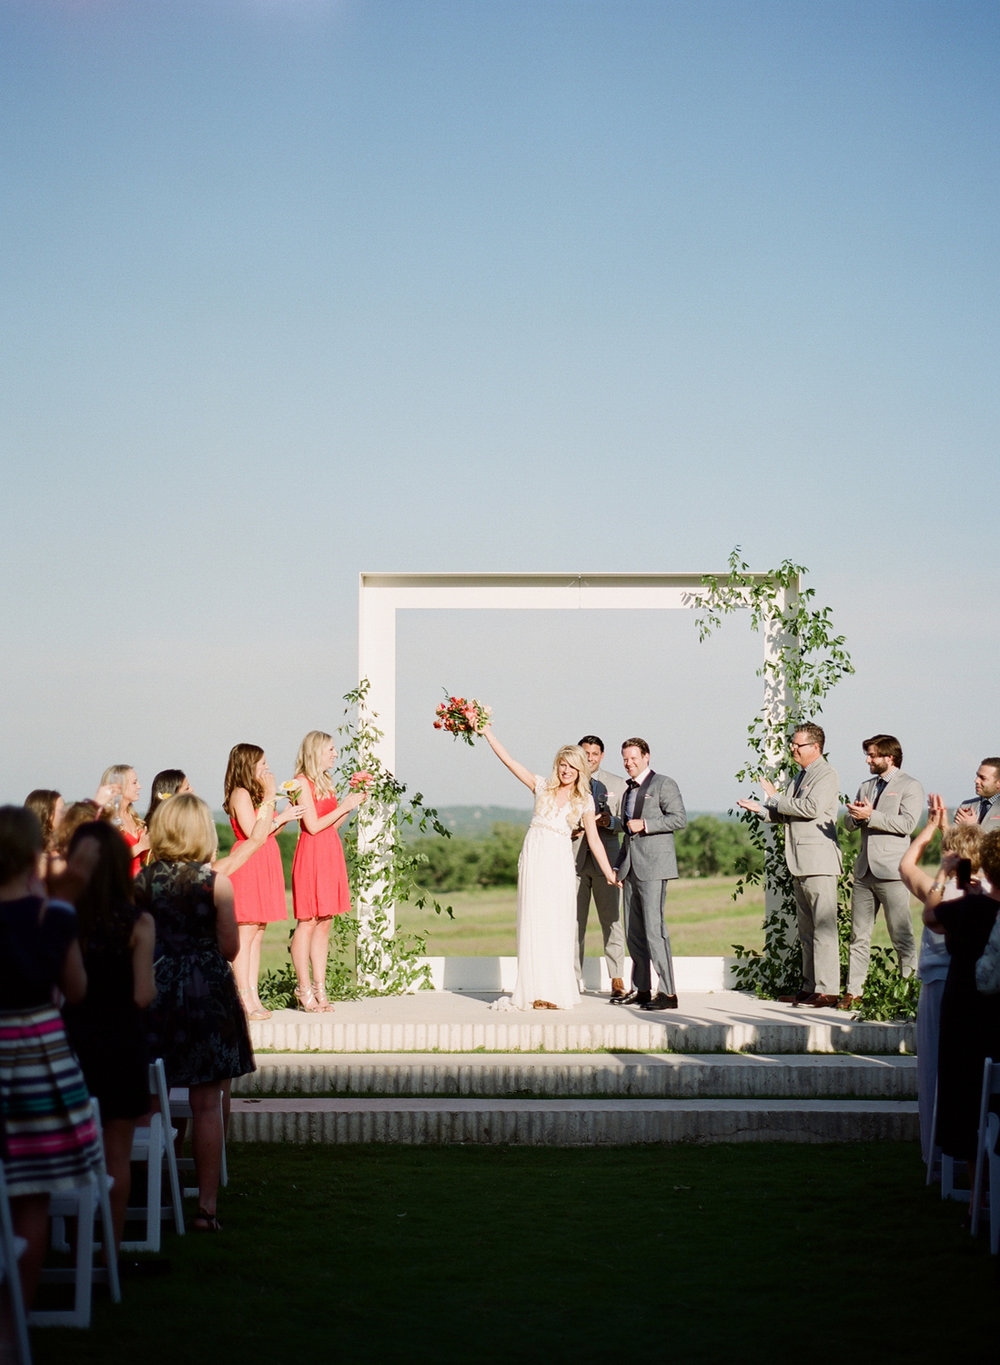 PROSPECT_HOUSE_WEDDING_AUSTIN_TX_BY_MATTHEW_MOORE_PHOTOGRAPHY_00422.jpg